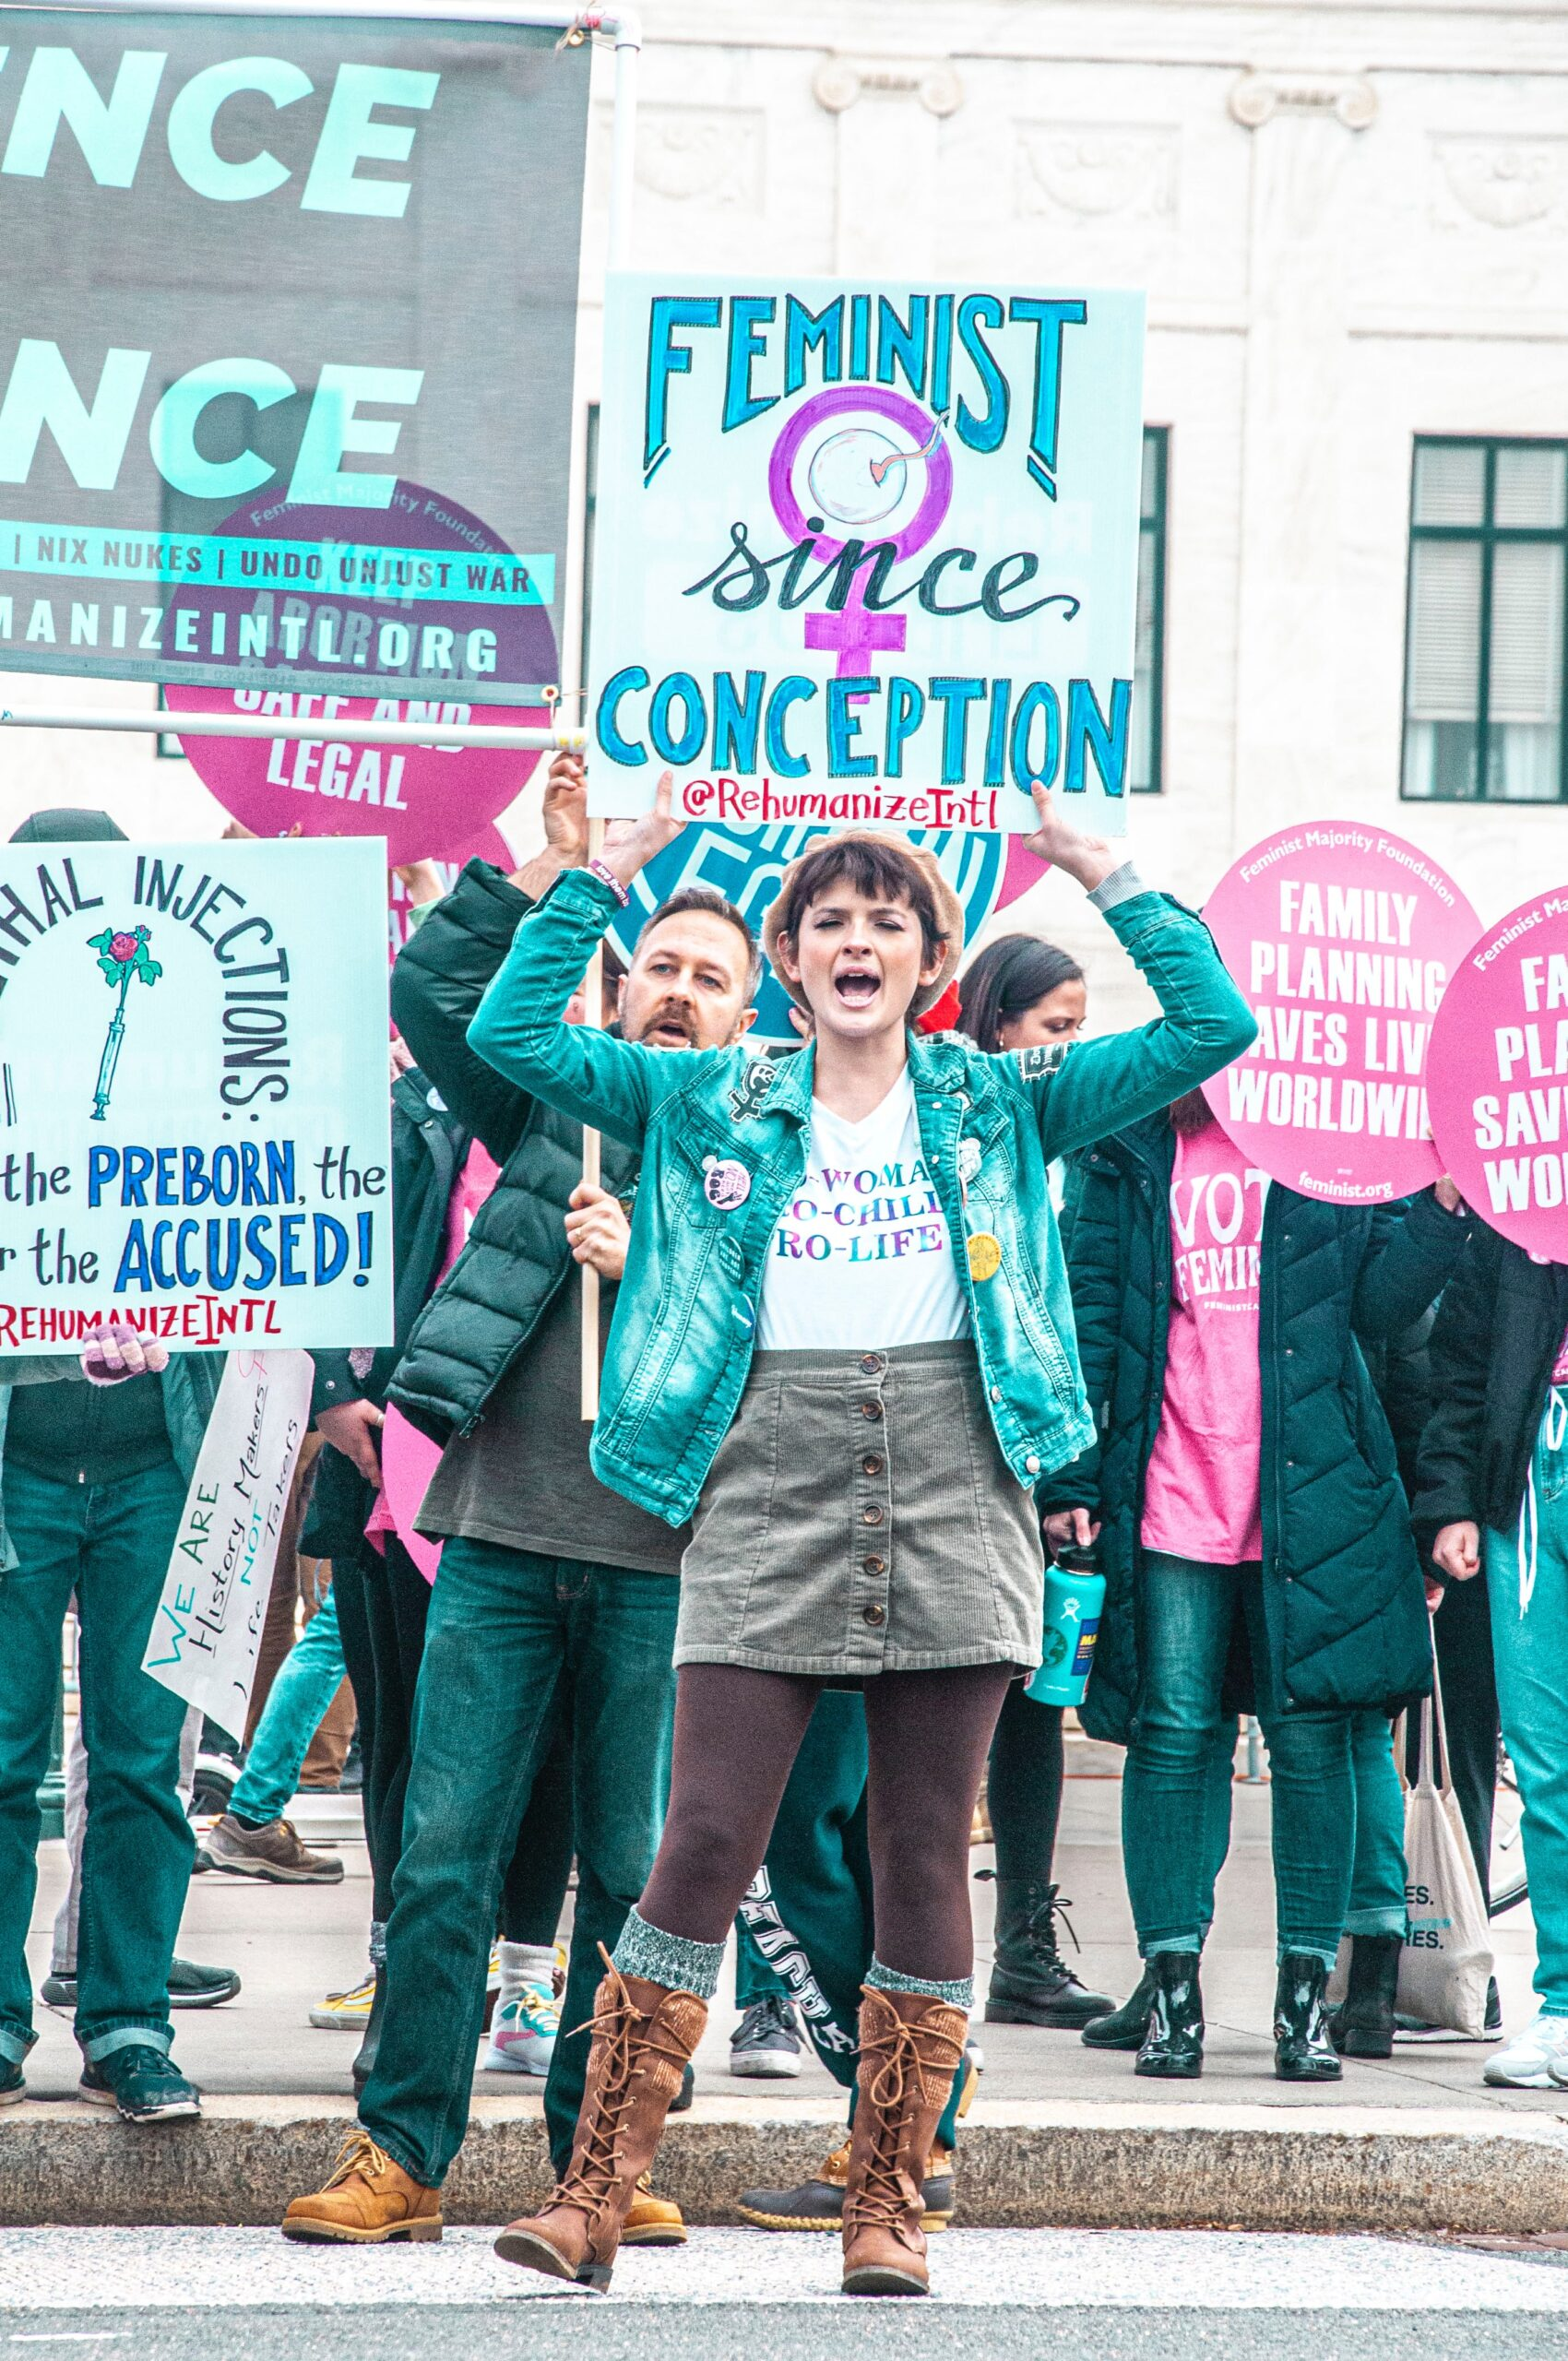 Part 2: Rhetoric and the Power It Holds on the Abortion Debate